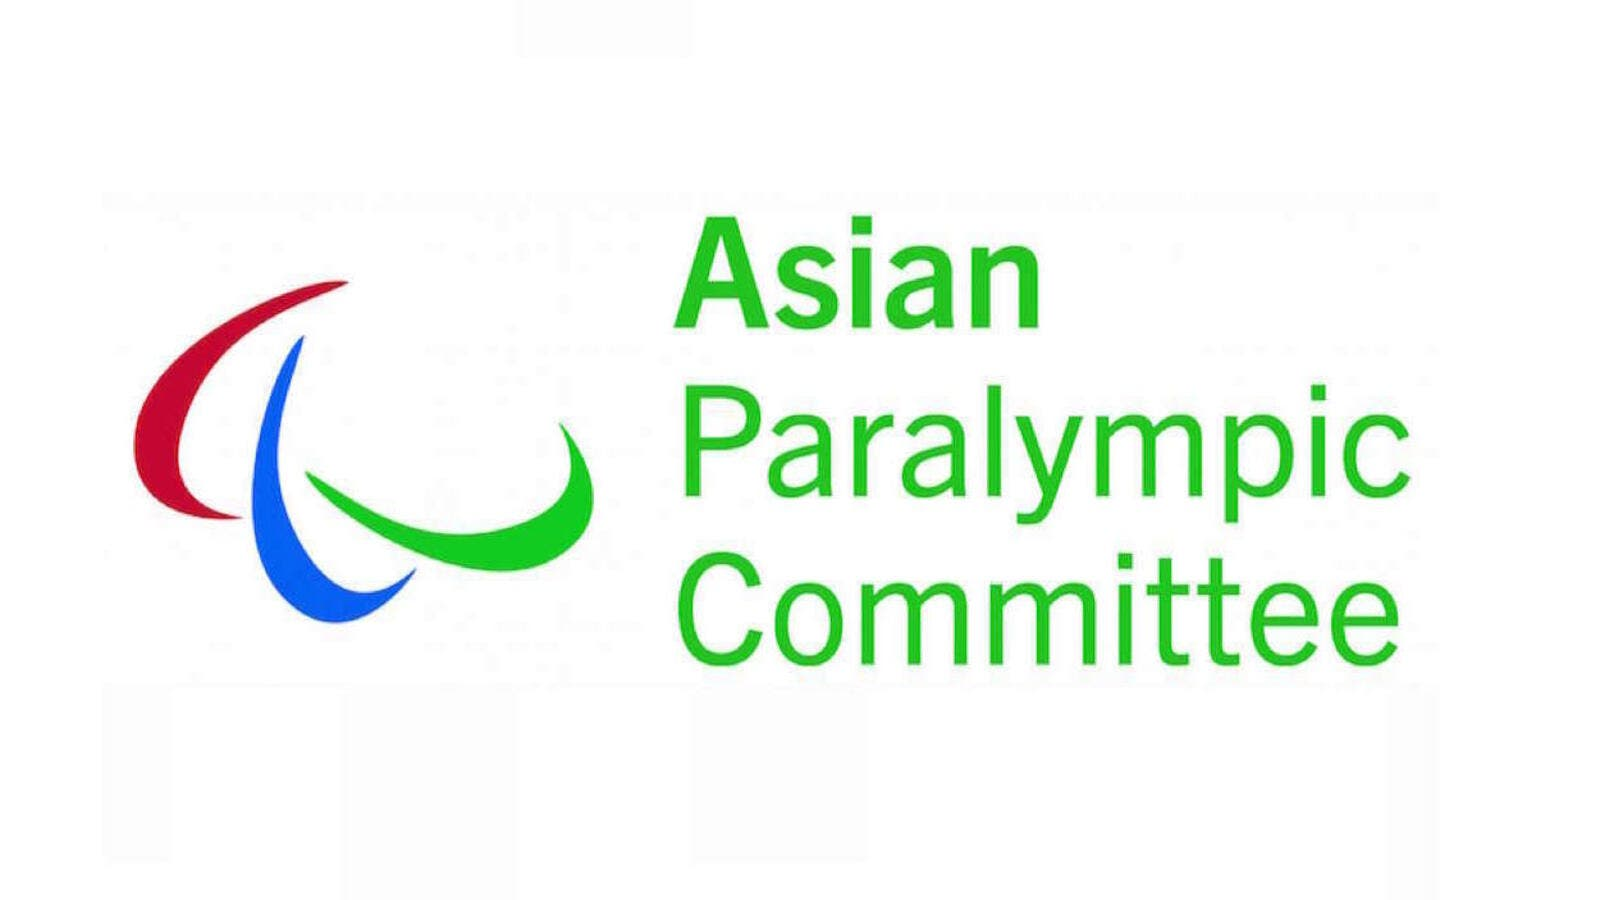 The Asian Paralympic Committee logo